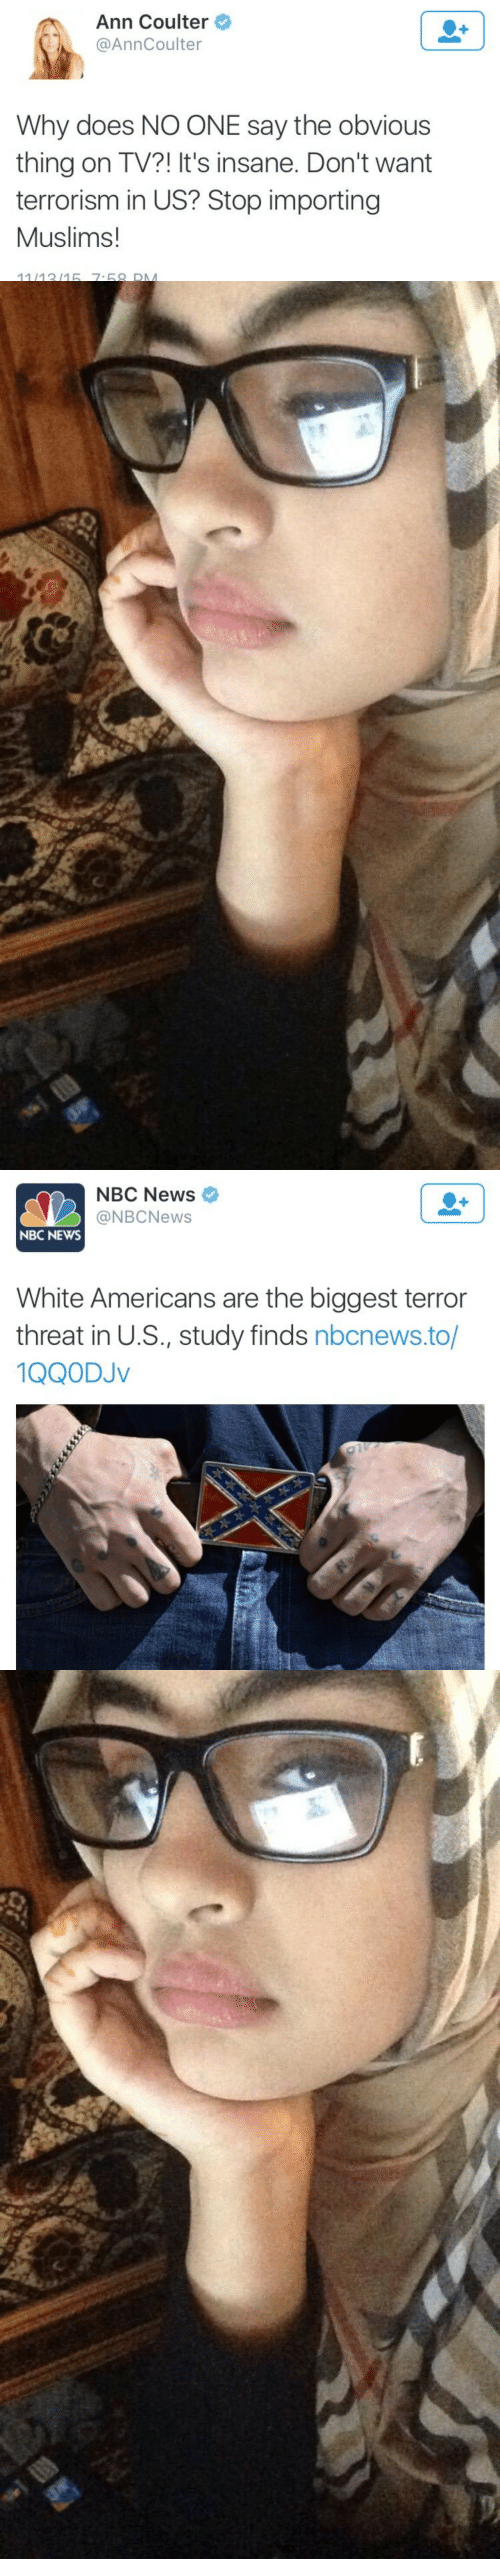 Terrorism: Ann Coulter  @AnnCoulter  Why does NO ONE say the obvious  thing on TV?! It's insane. Don't want  terrorism in US? Stop importing  Muslims!  11/1315 7-68 DM   NBC News  @NBCNews  NBC NEWS  White Americans are the biggest terror  threat in U.S., study finds nbcnews.to/  1QQODJv